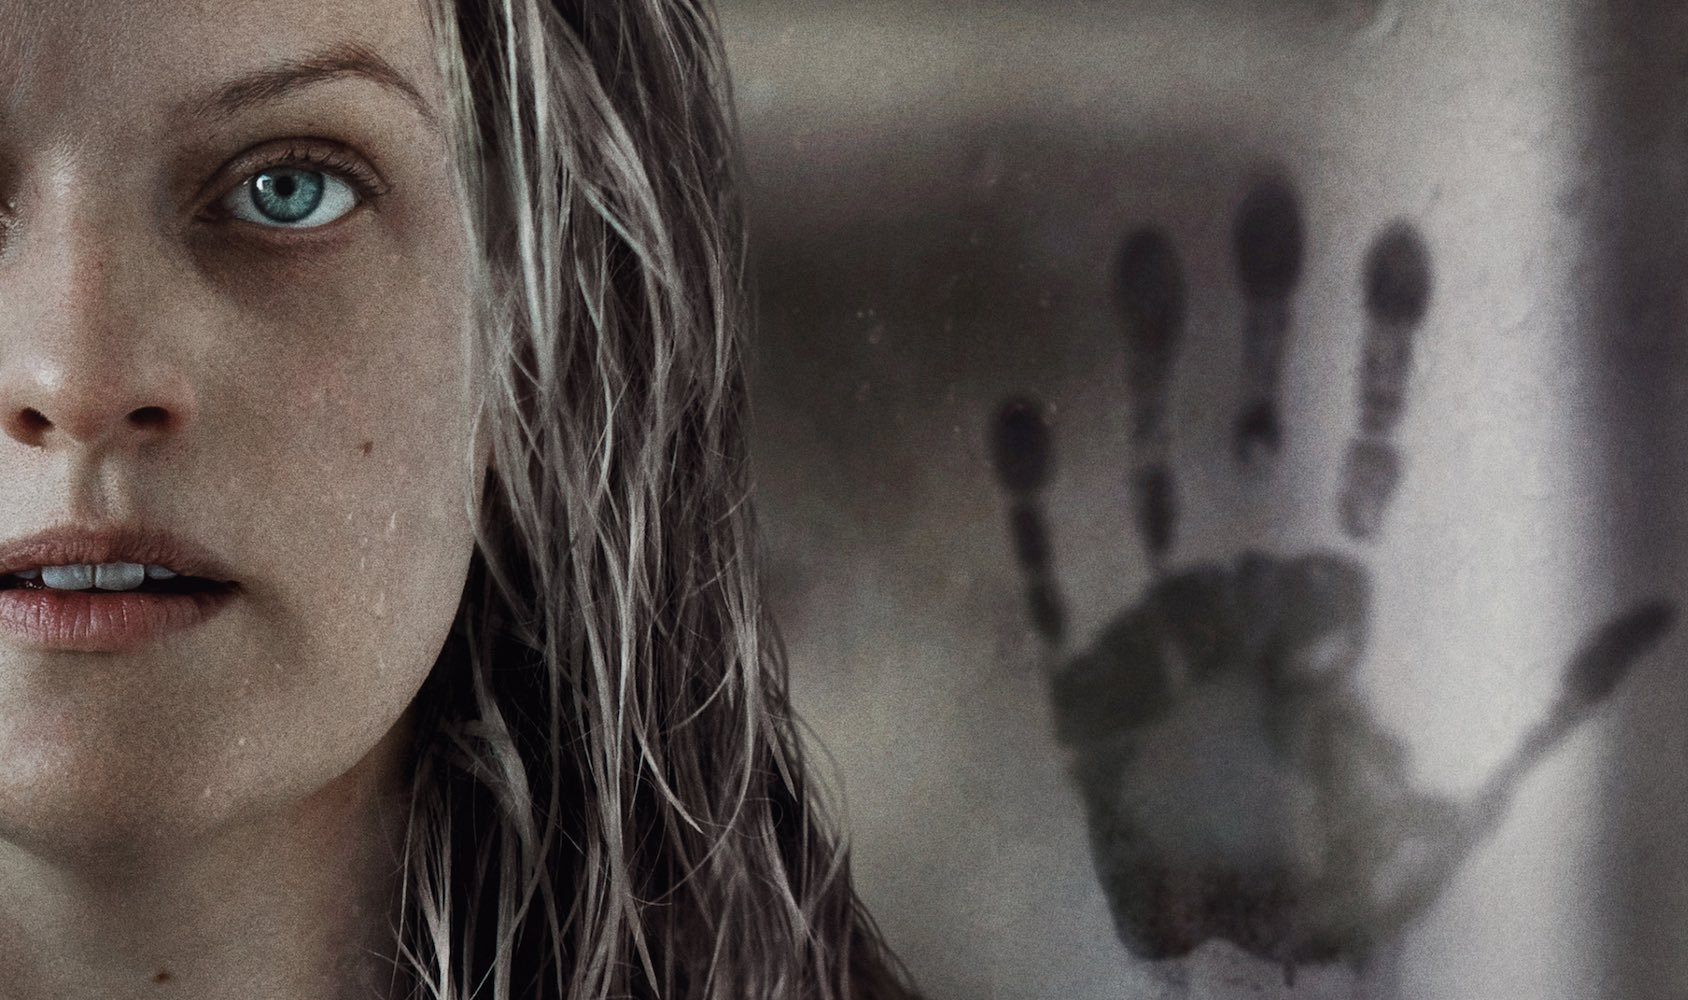 A white woman with stringy blond hair and huge blue eyes looks at the camera. Behind her, a handprint stains glass.